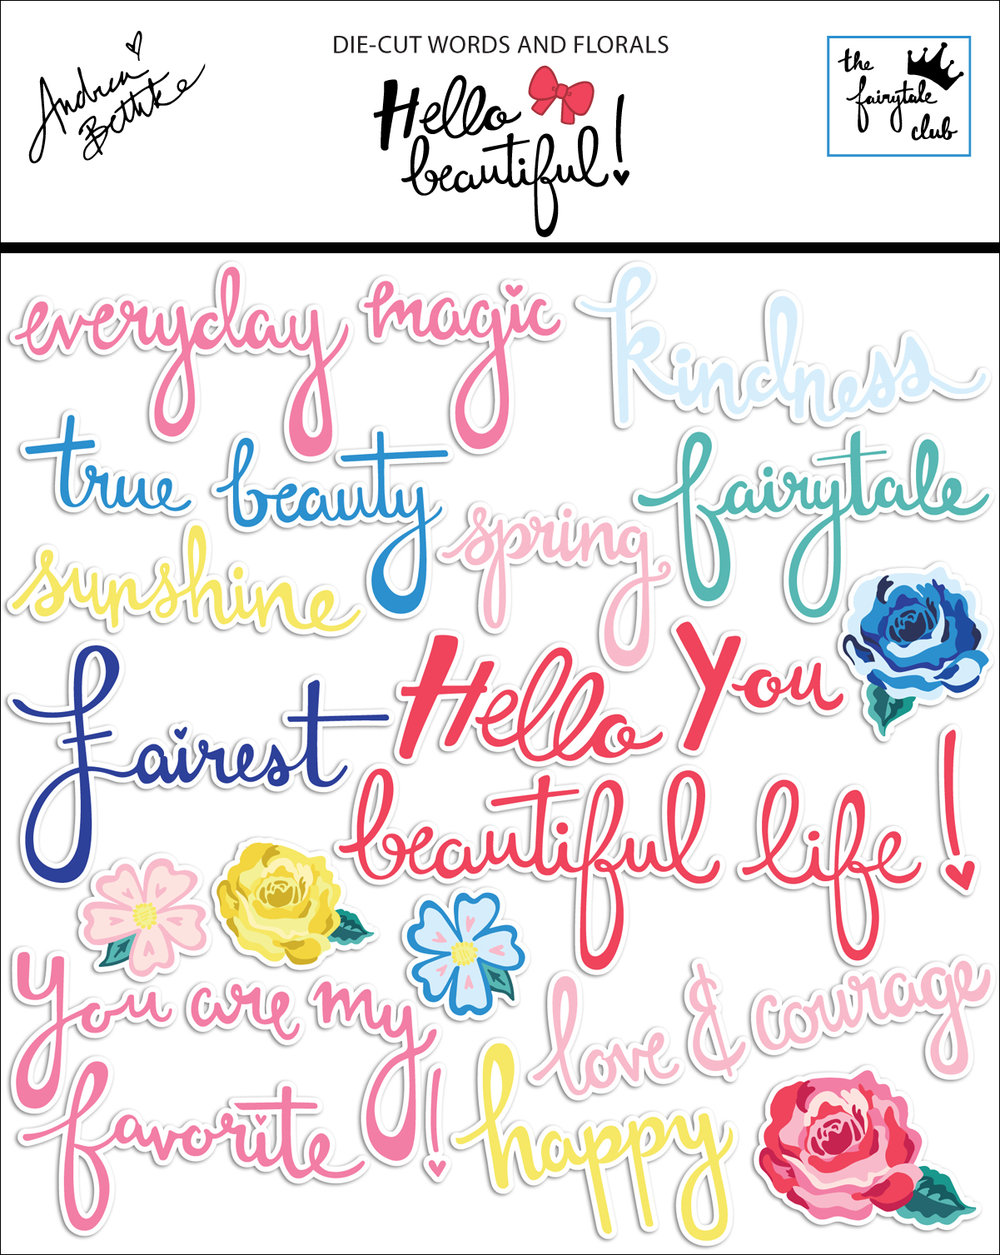 Hello Beautiful - Die Cut Words and Florals with packaging.jpg